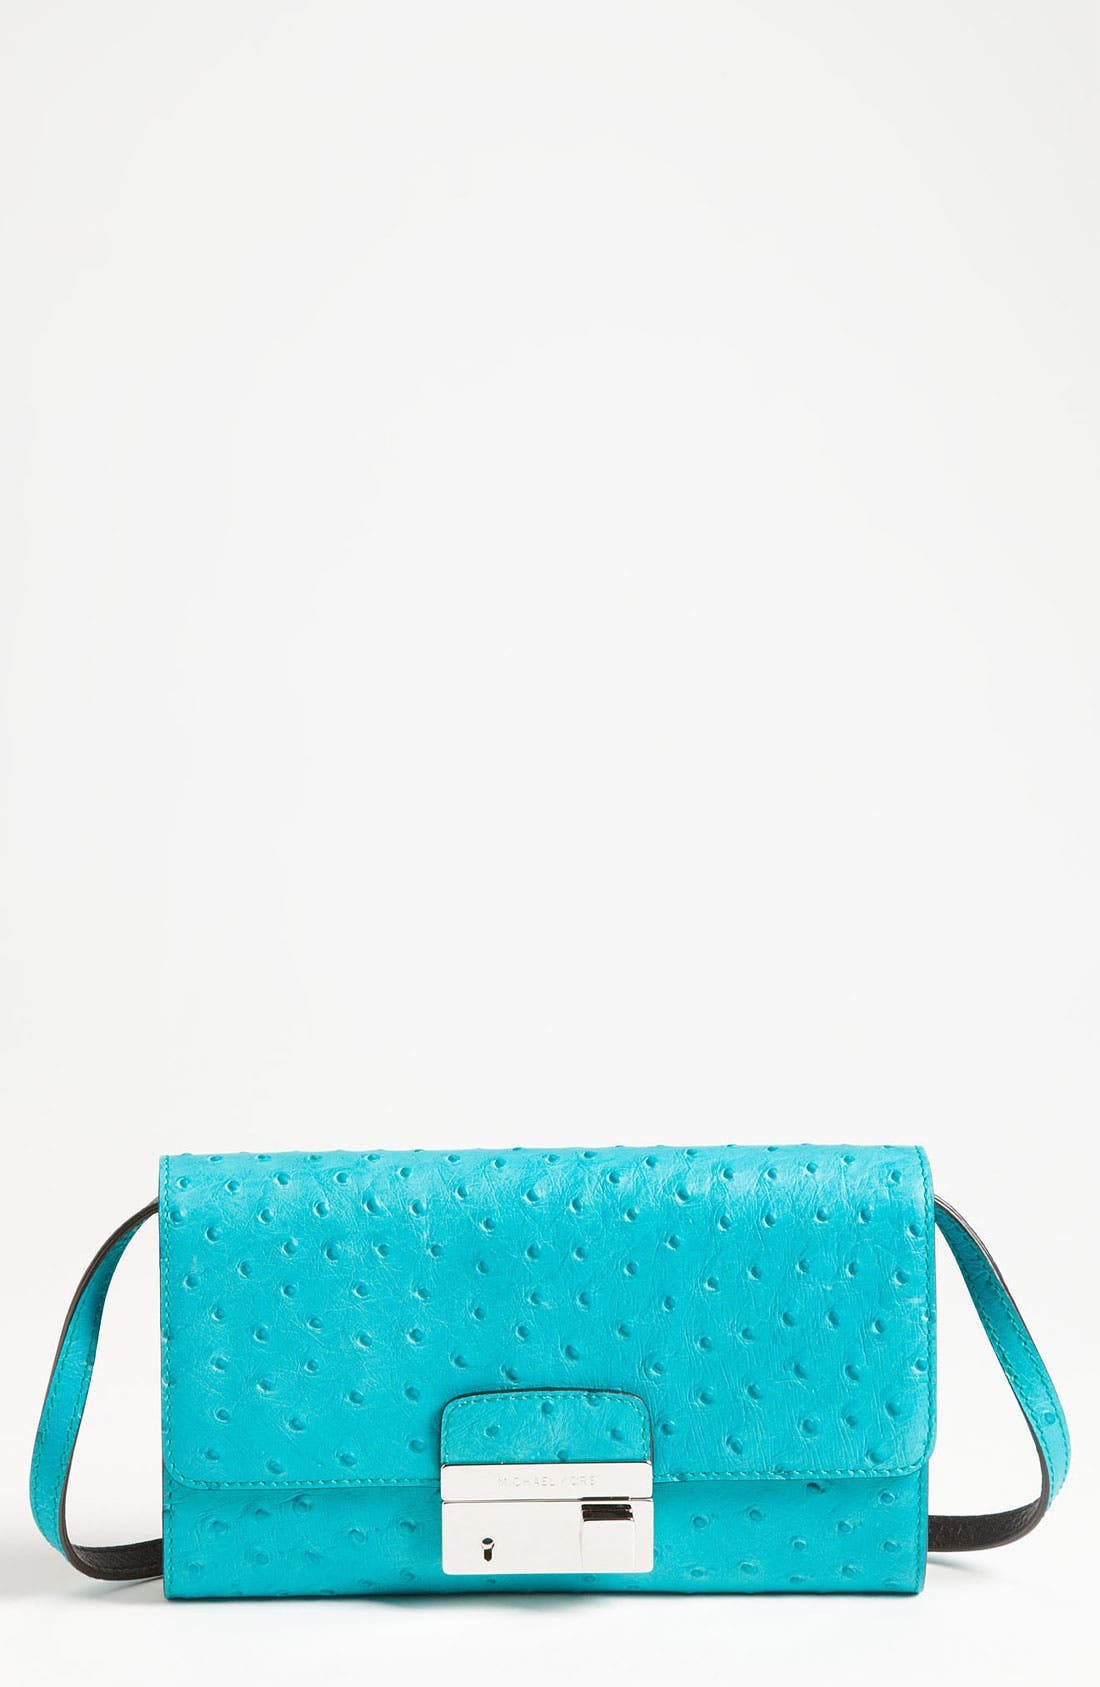 Main Image - Michael Kors 'Gia' Ostrich Embossed Leather Clutch